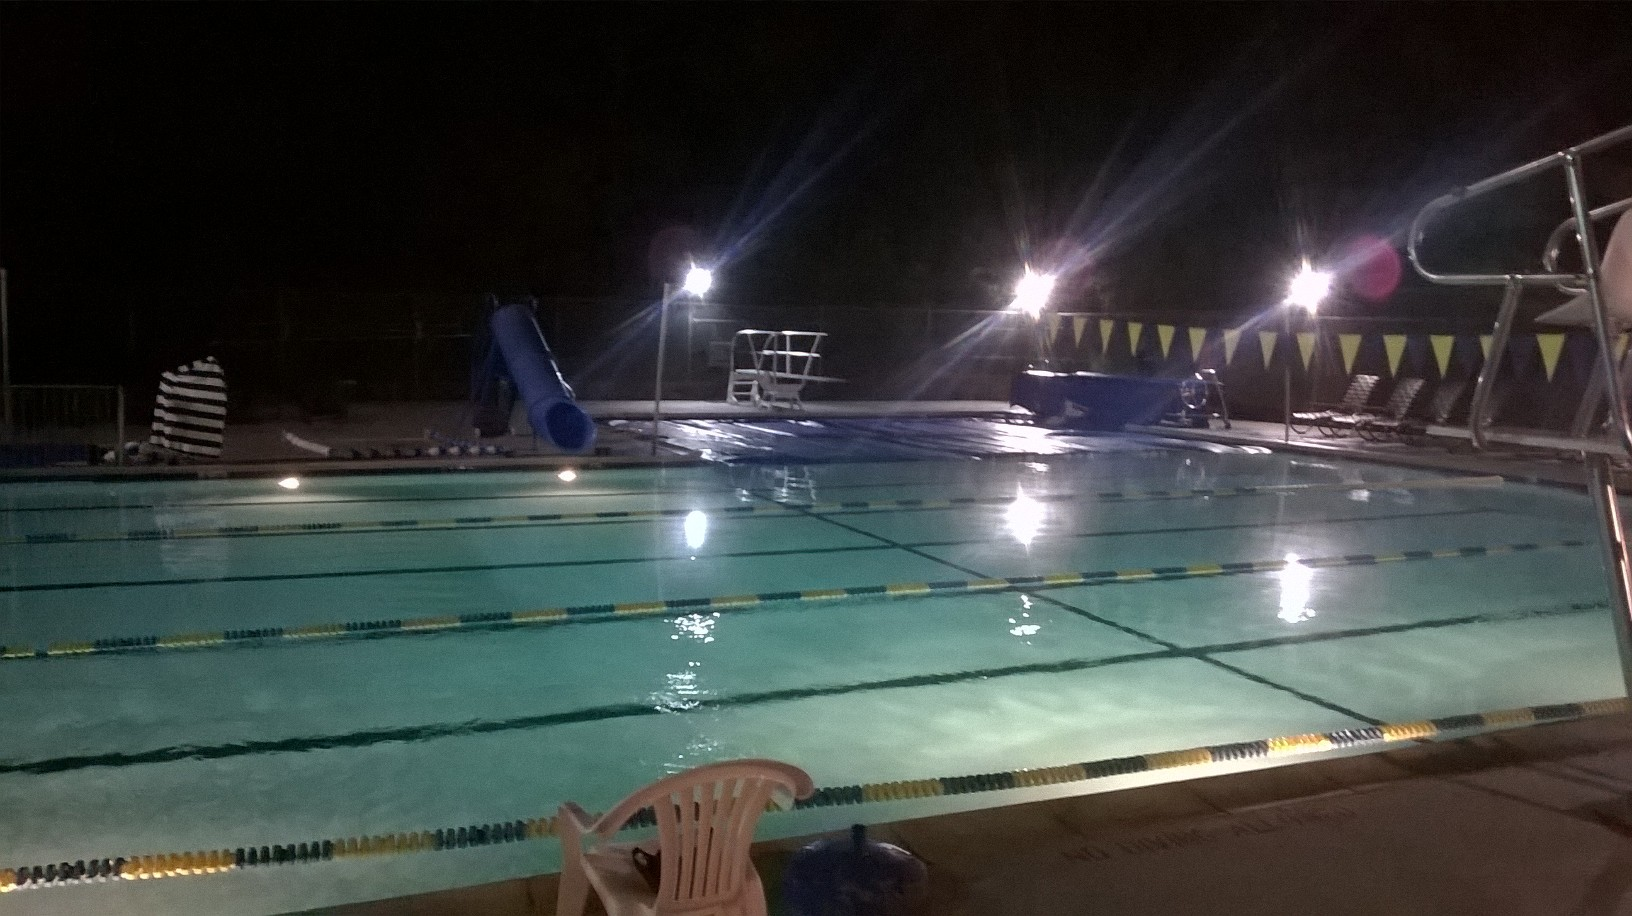 0213 - Highlands Rec Center (San Mateo)